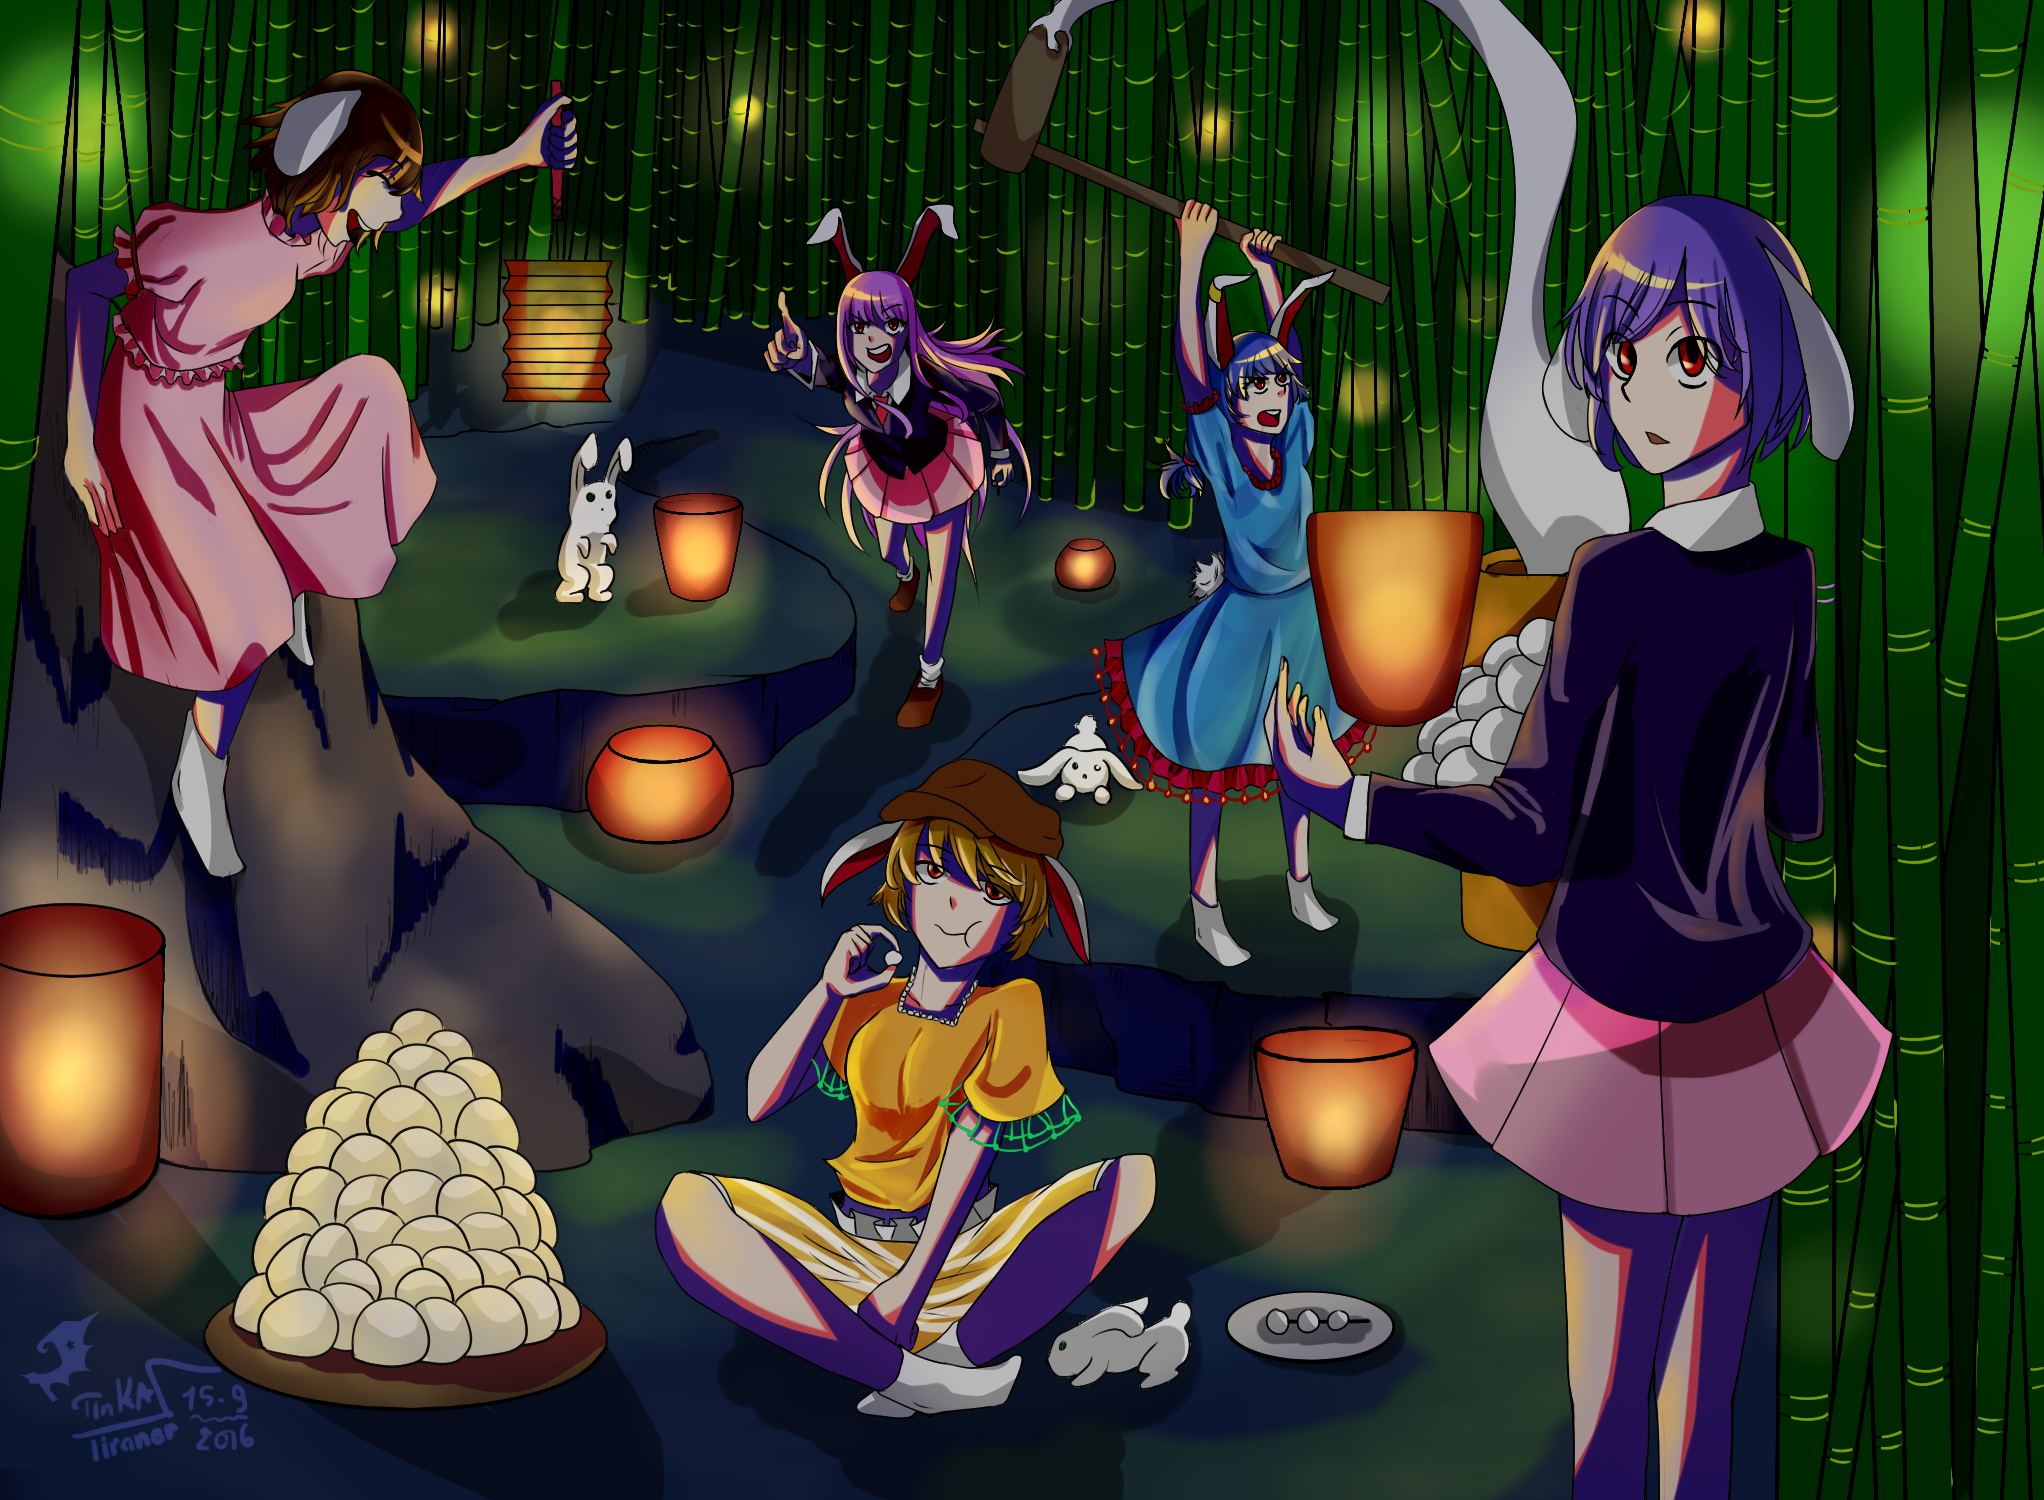 [Gallery] Tankihou: Ổ Dơi - Page 8 The_moon_festival_of_rabbits_by_tinkatiranor-dahsws2